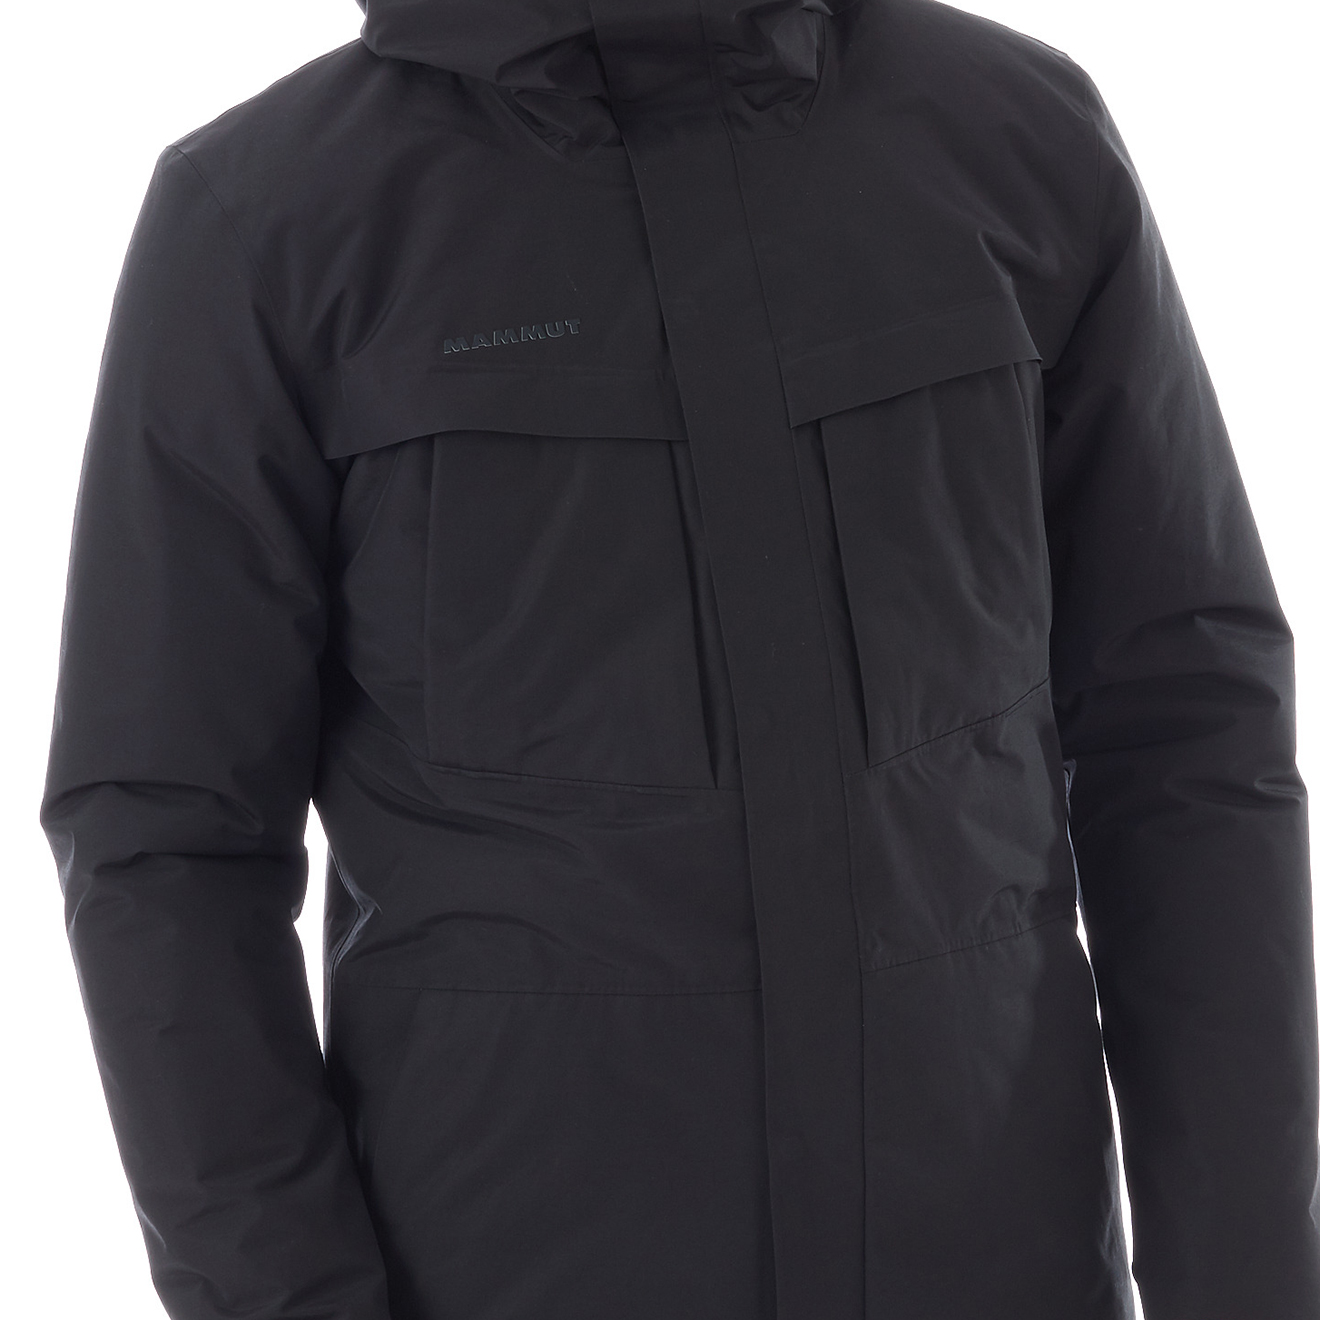 Mammut Chamuera Hs Thermo Hooded Parka Jacket Black The Sporting Lodge